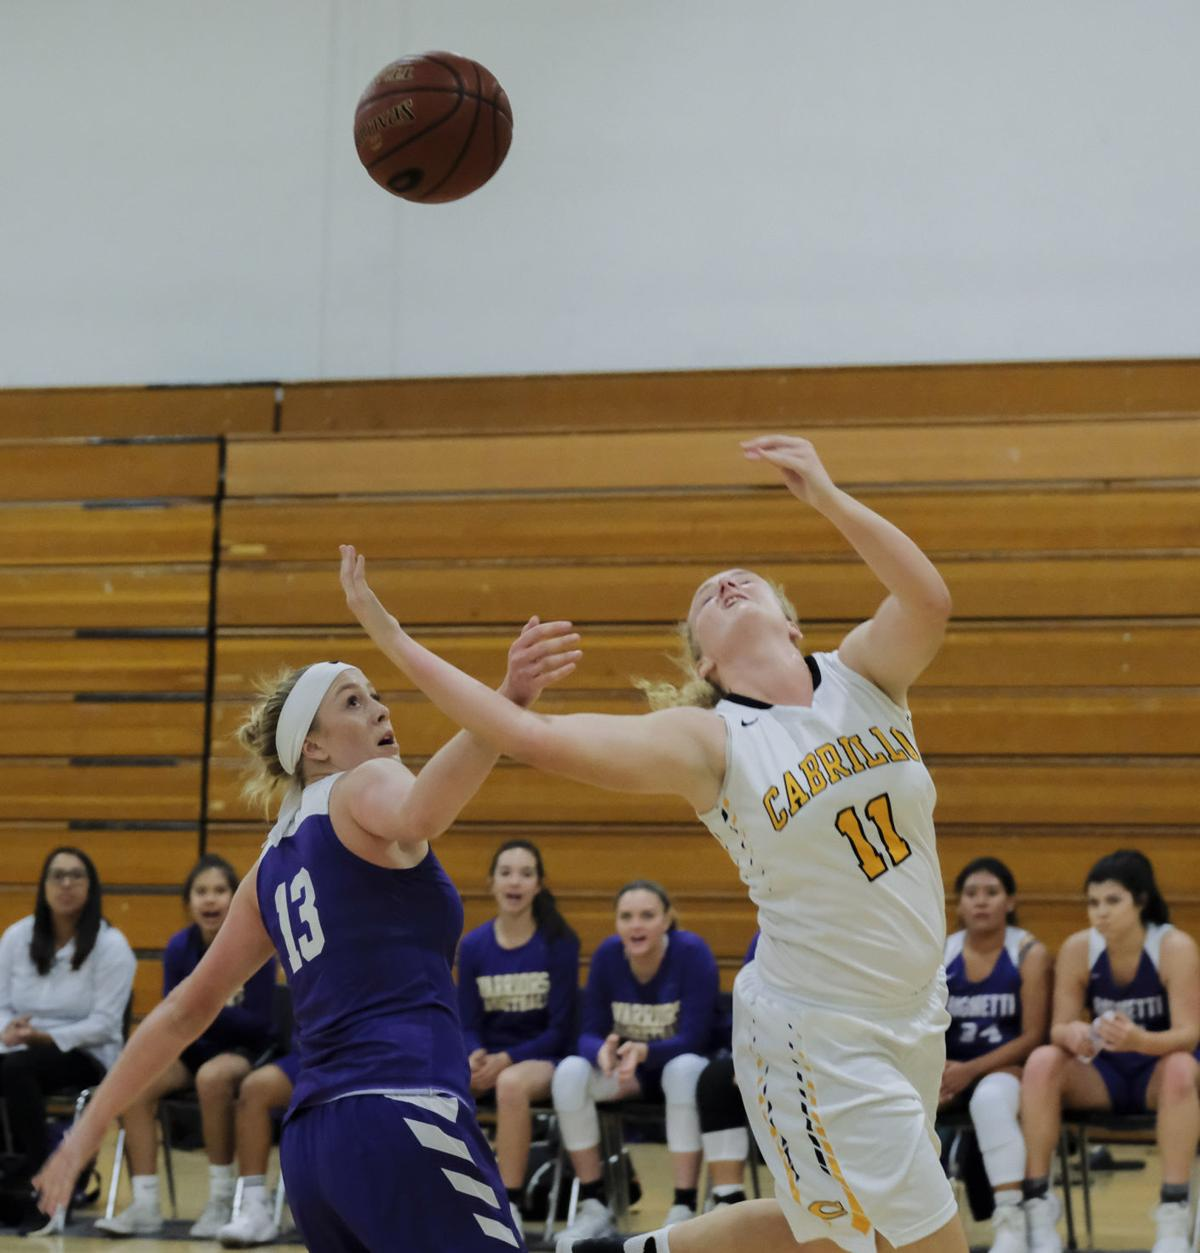 120817 Girls Basketball Righetti at Cabrillo 05.jpg